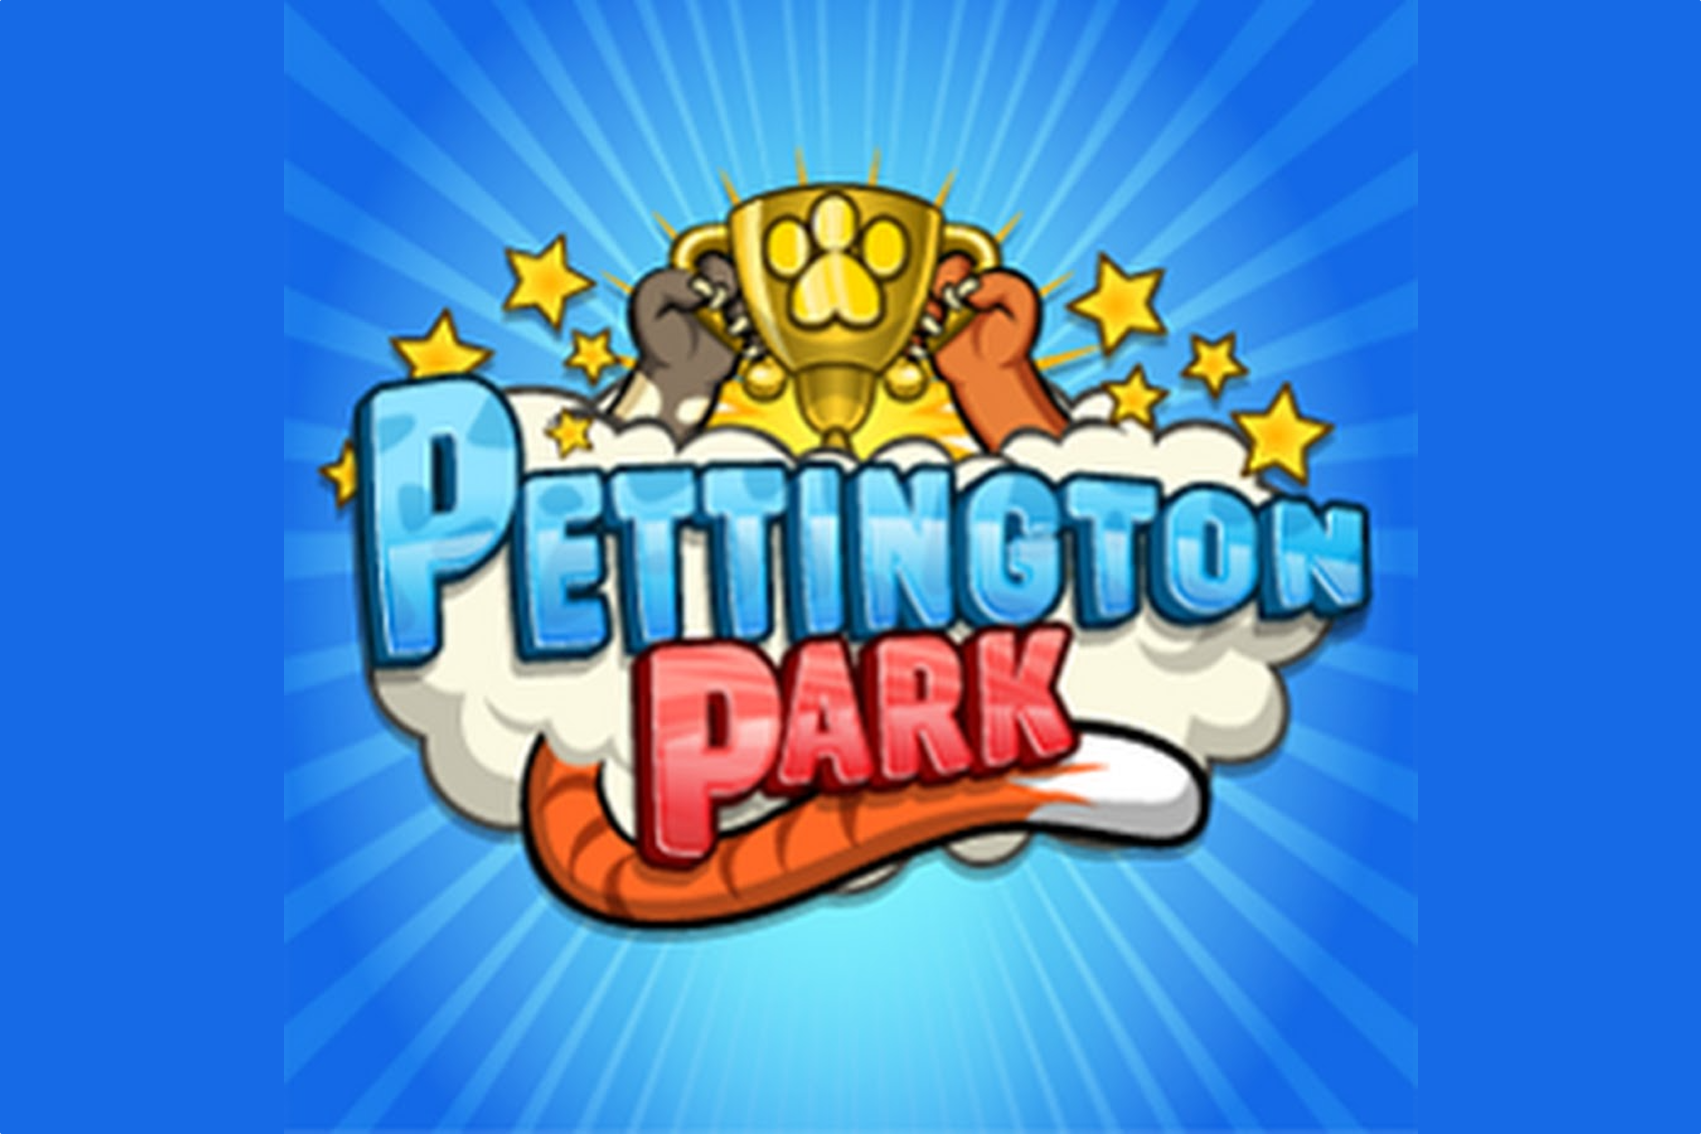 pettington.png